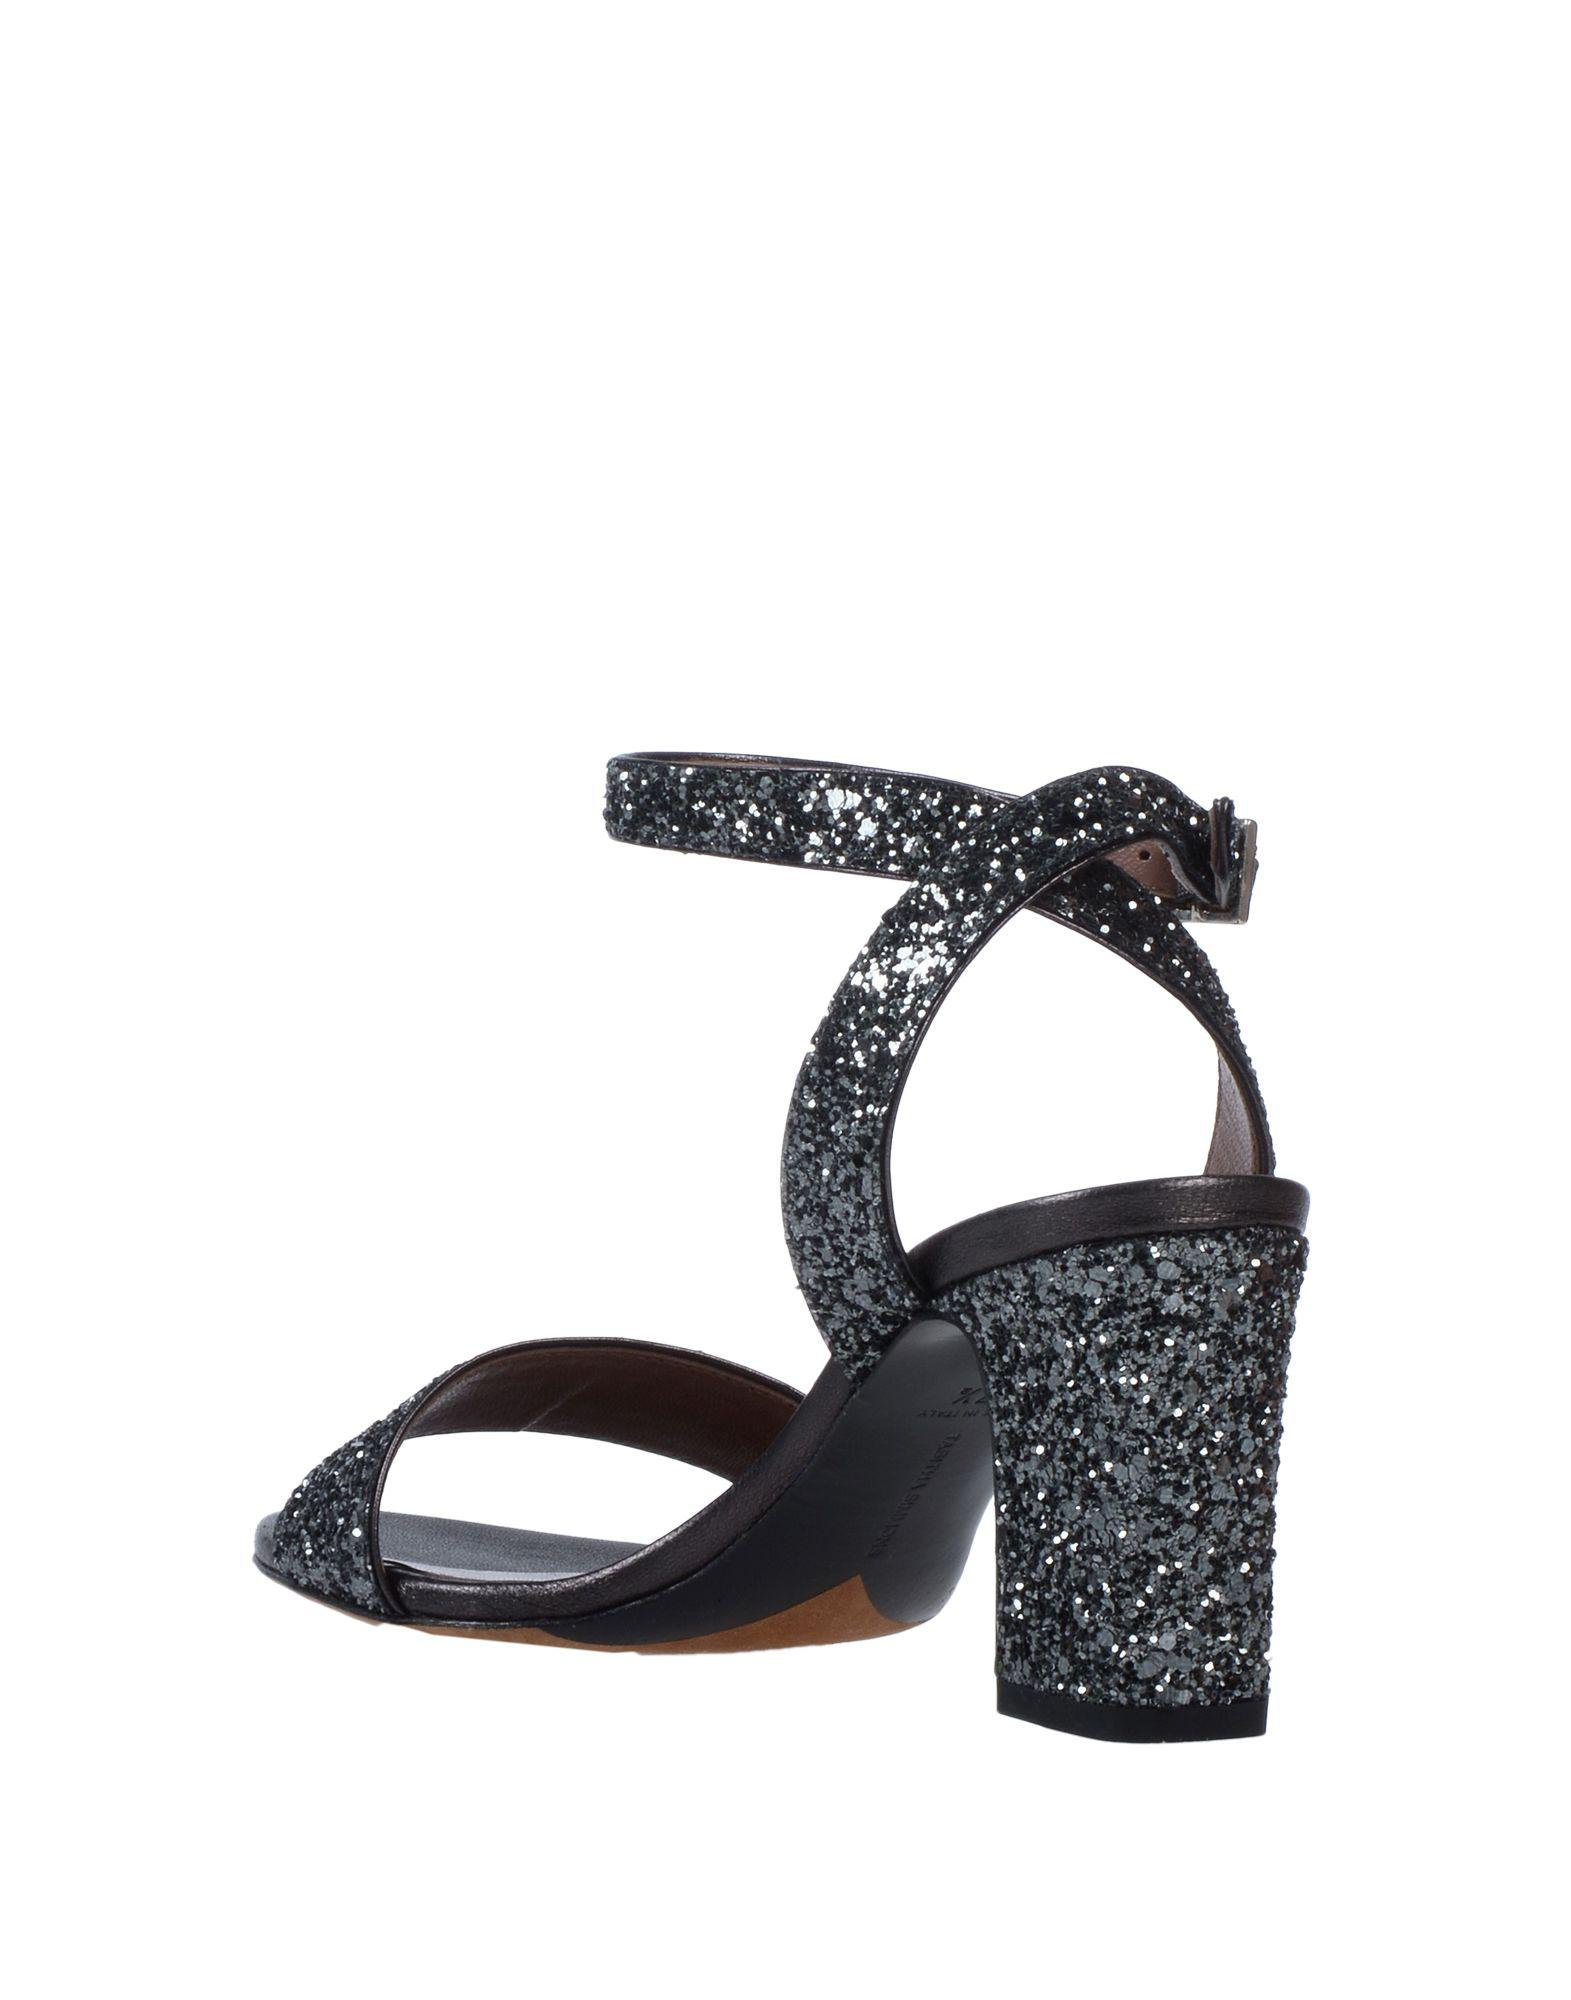 4892b43e581 Lyst - Tabitha Simmons Leticia Glitter Sandals in Gray - Save  31.5934065934066%